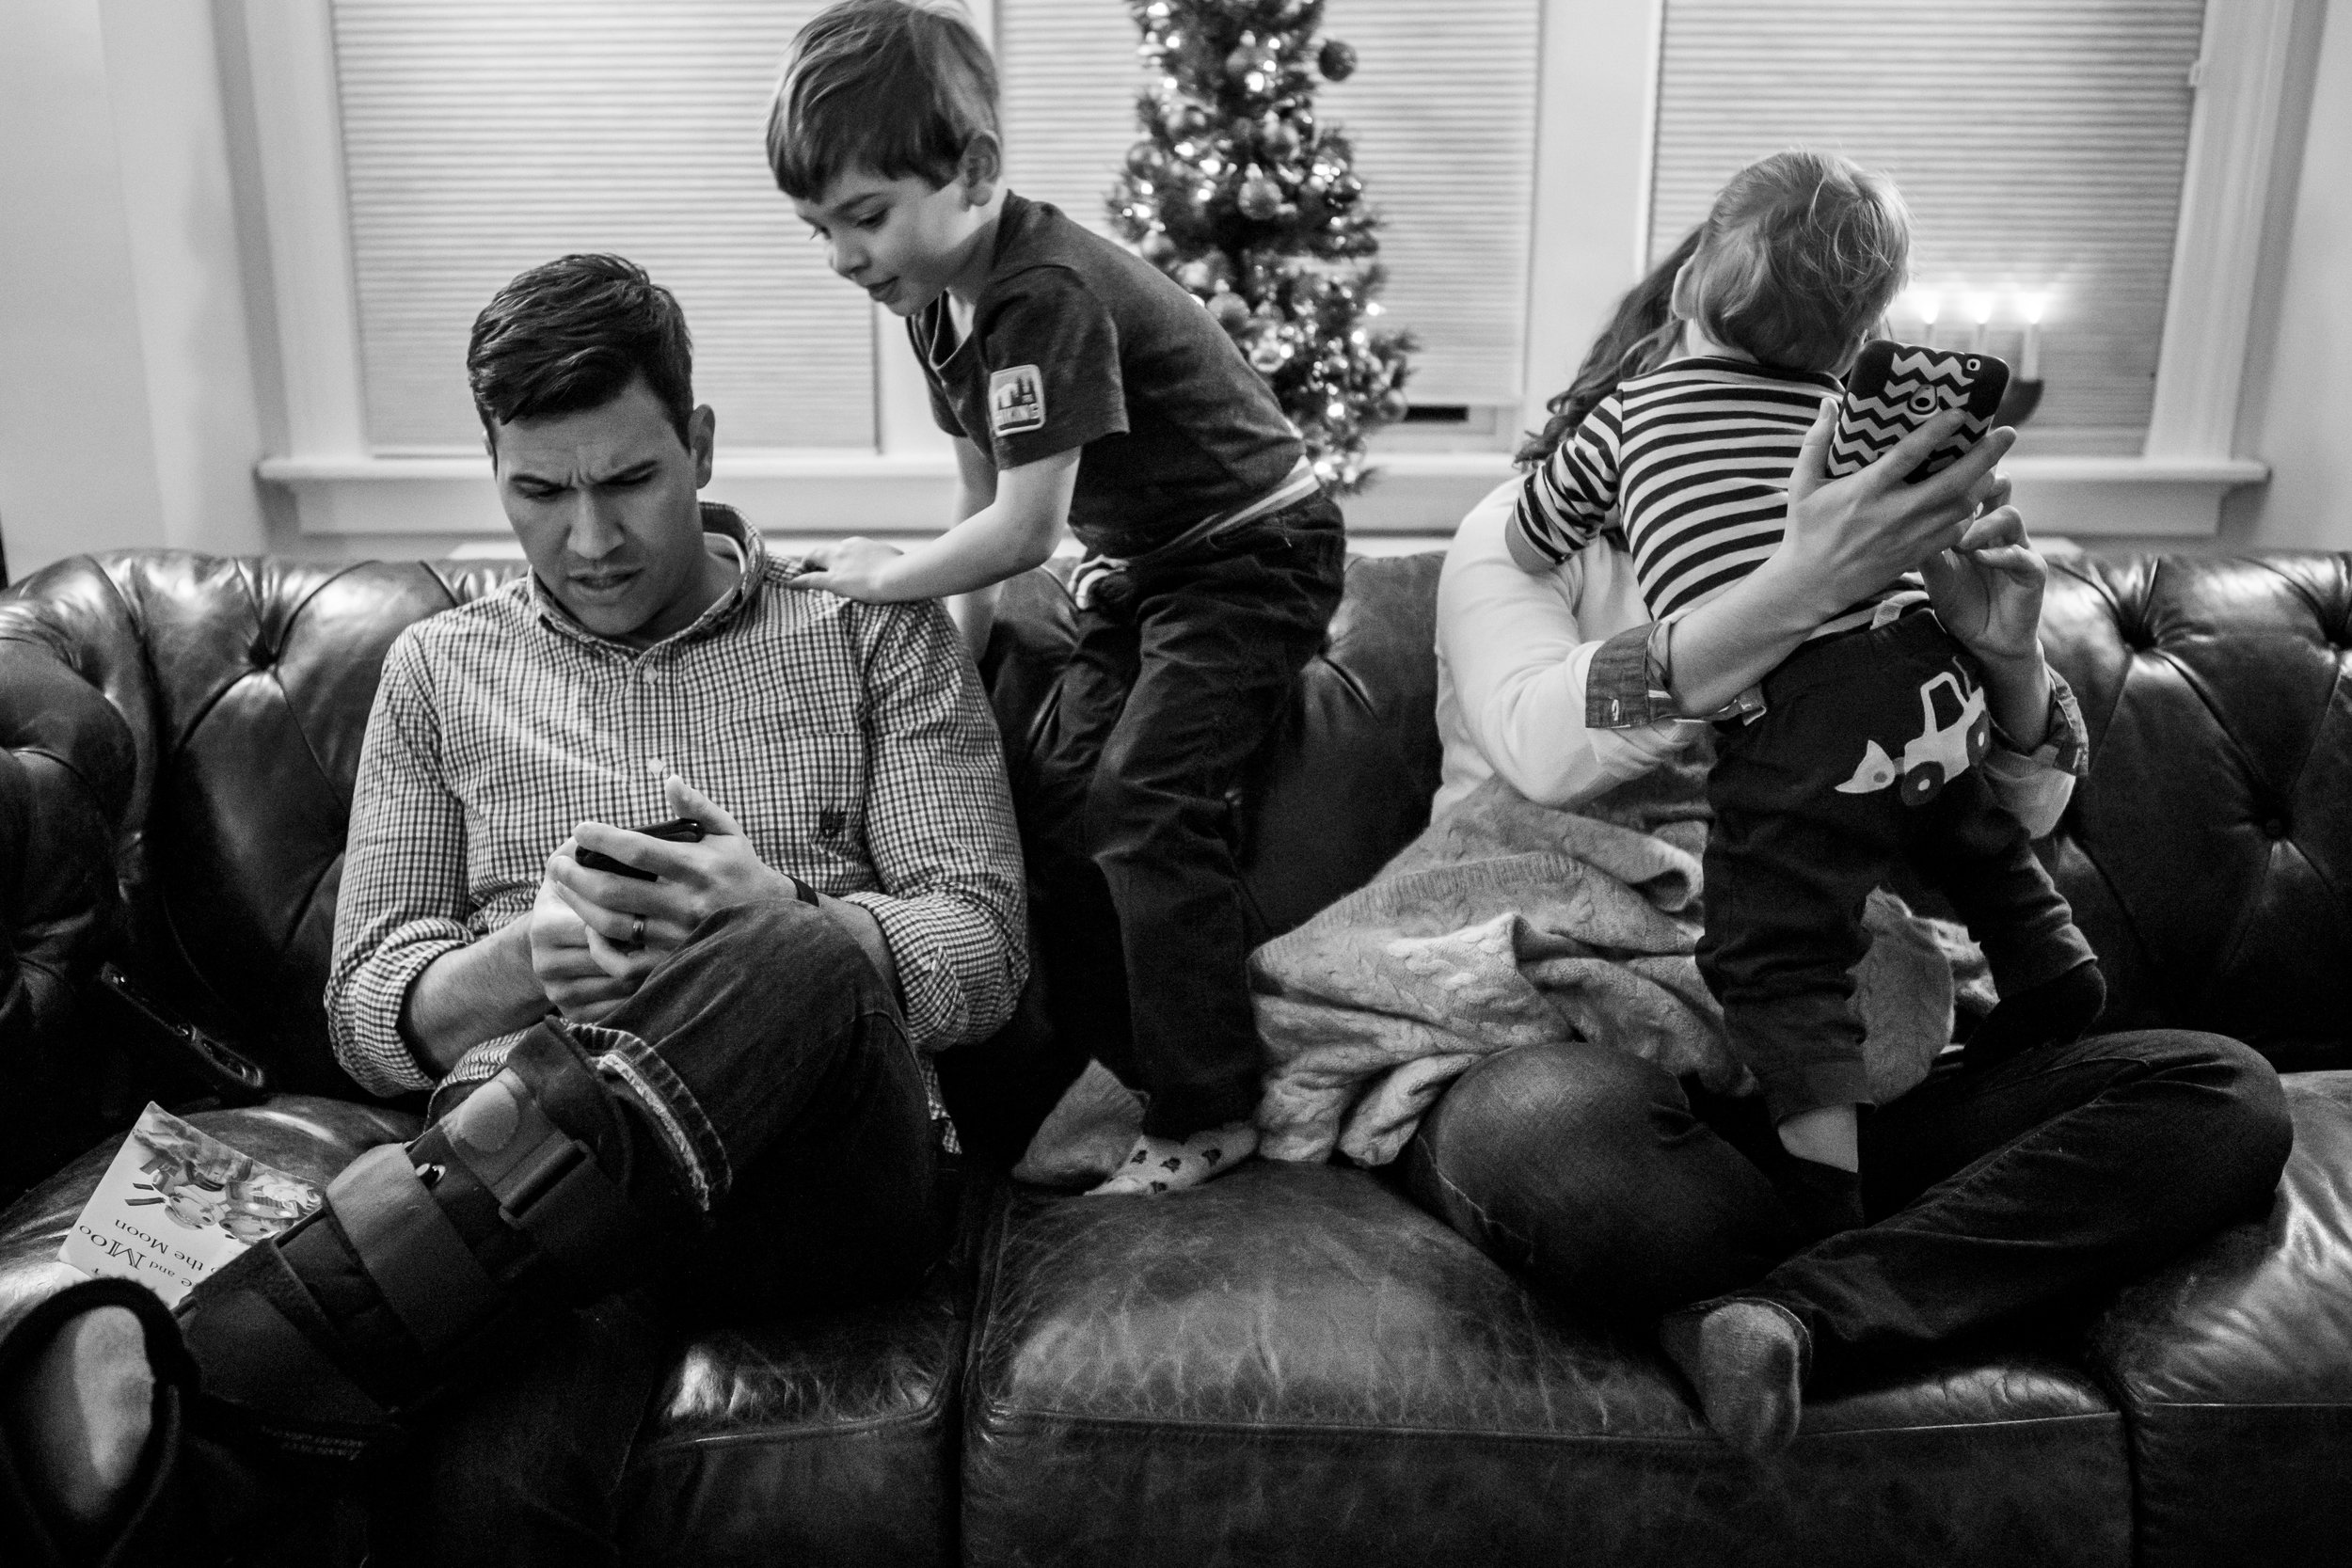 Real life family portrait of Connecticut parents trying to use their smart phones while their children climb on them.